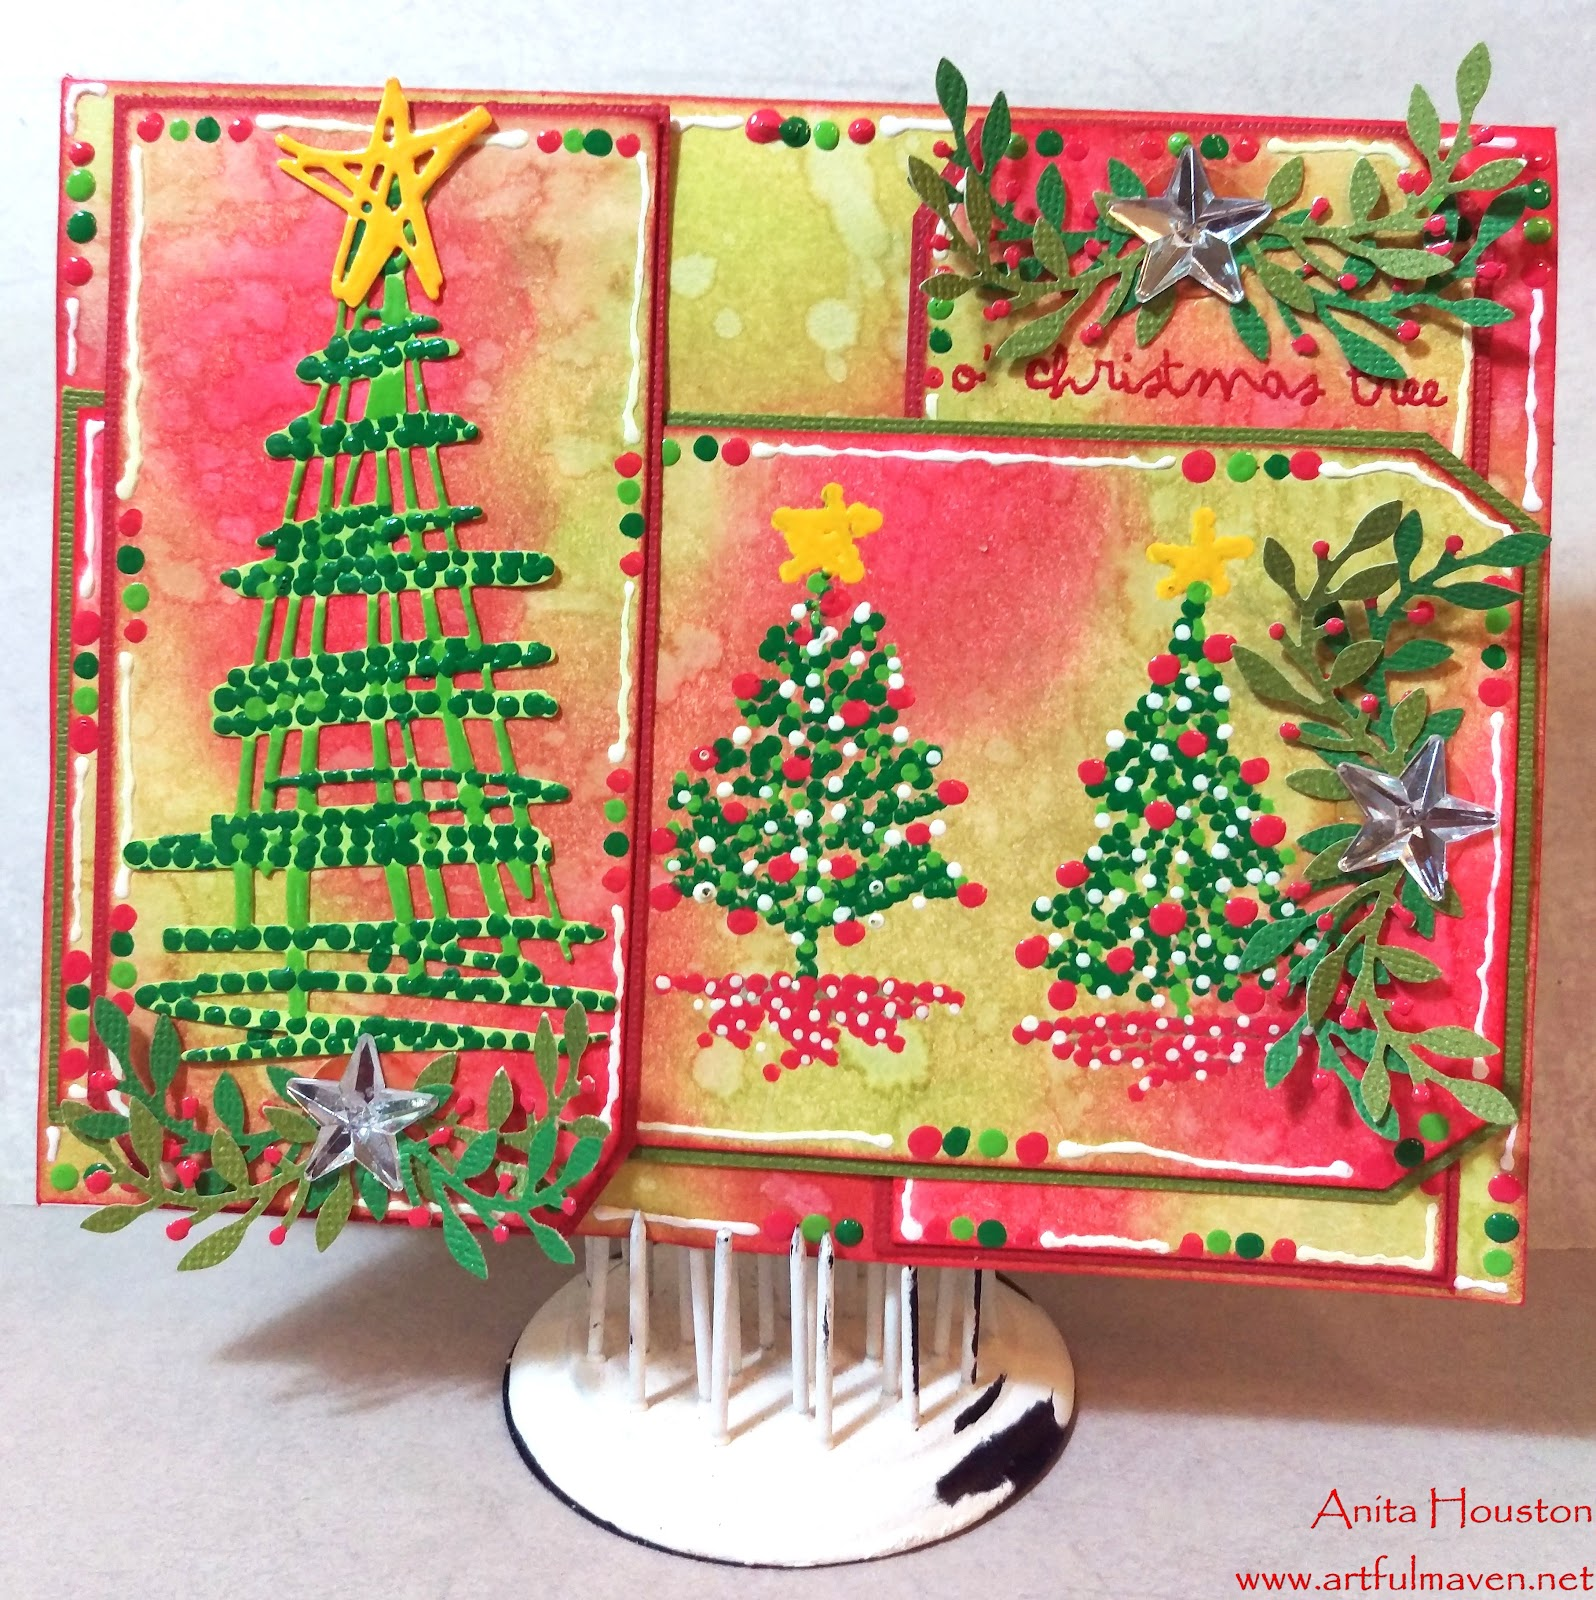 Ou0027 Christmas Tree Enamel Accents Card